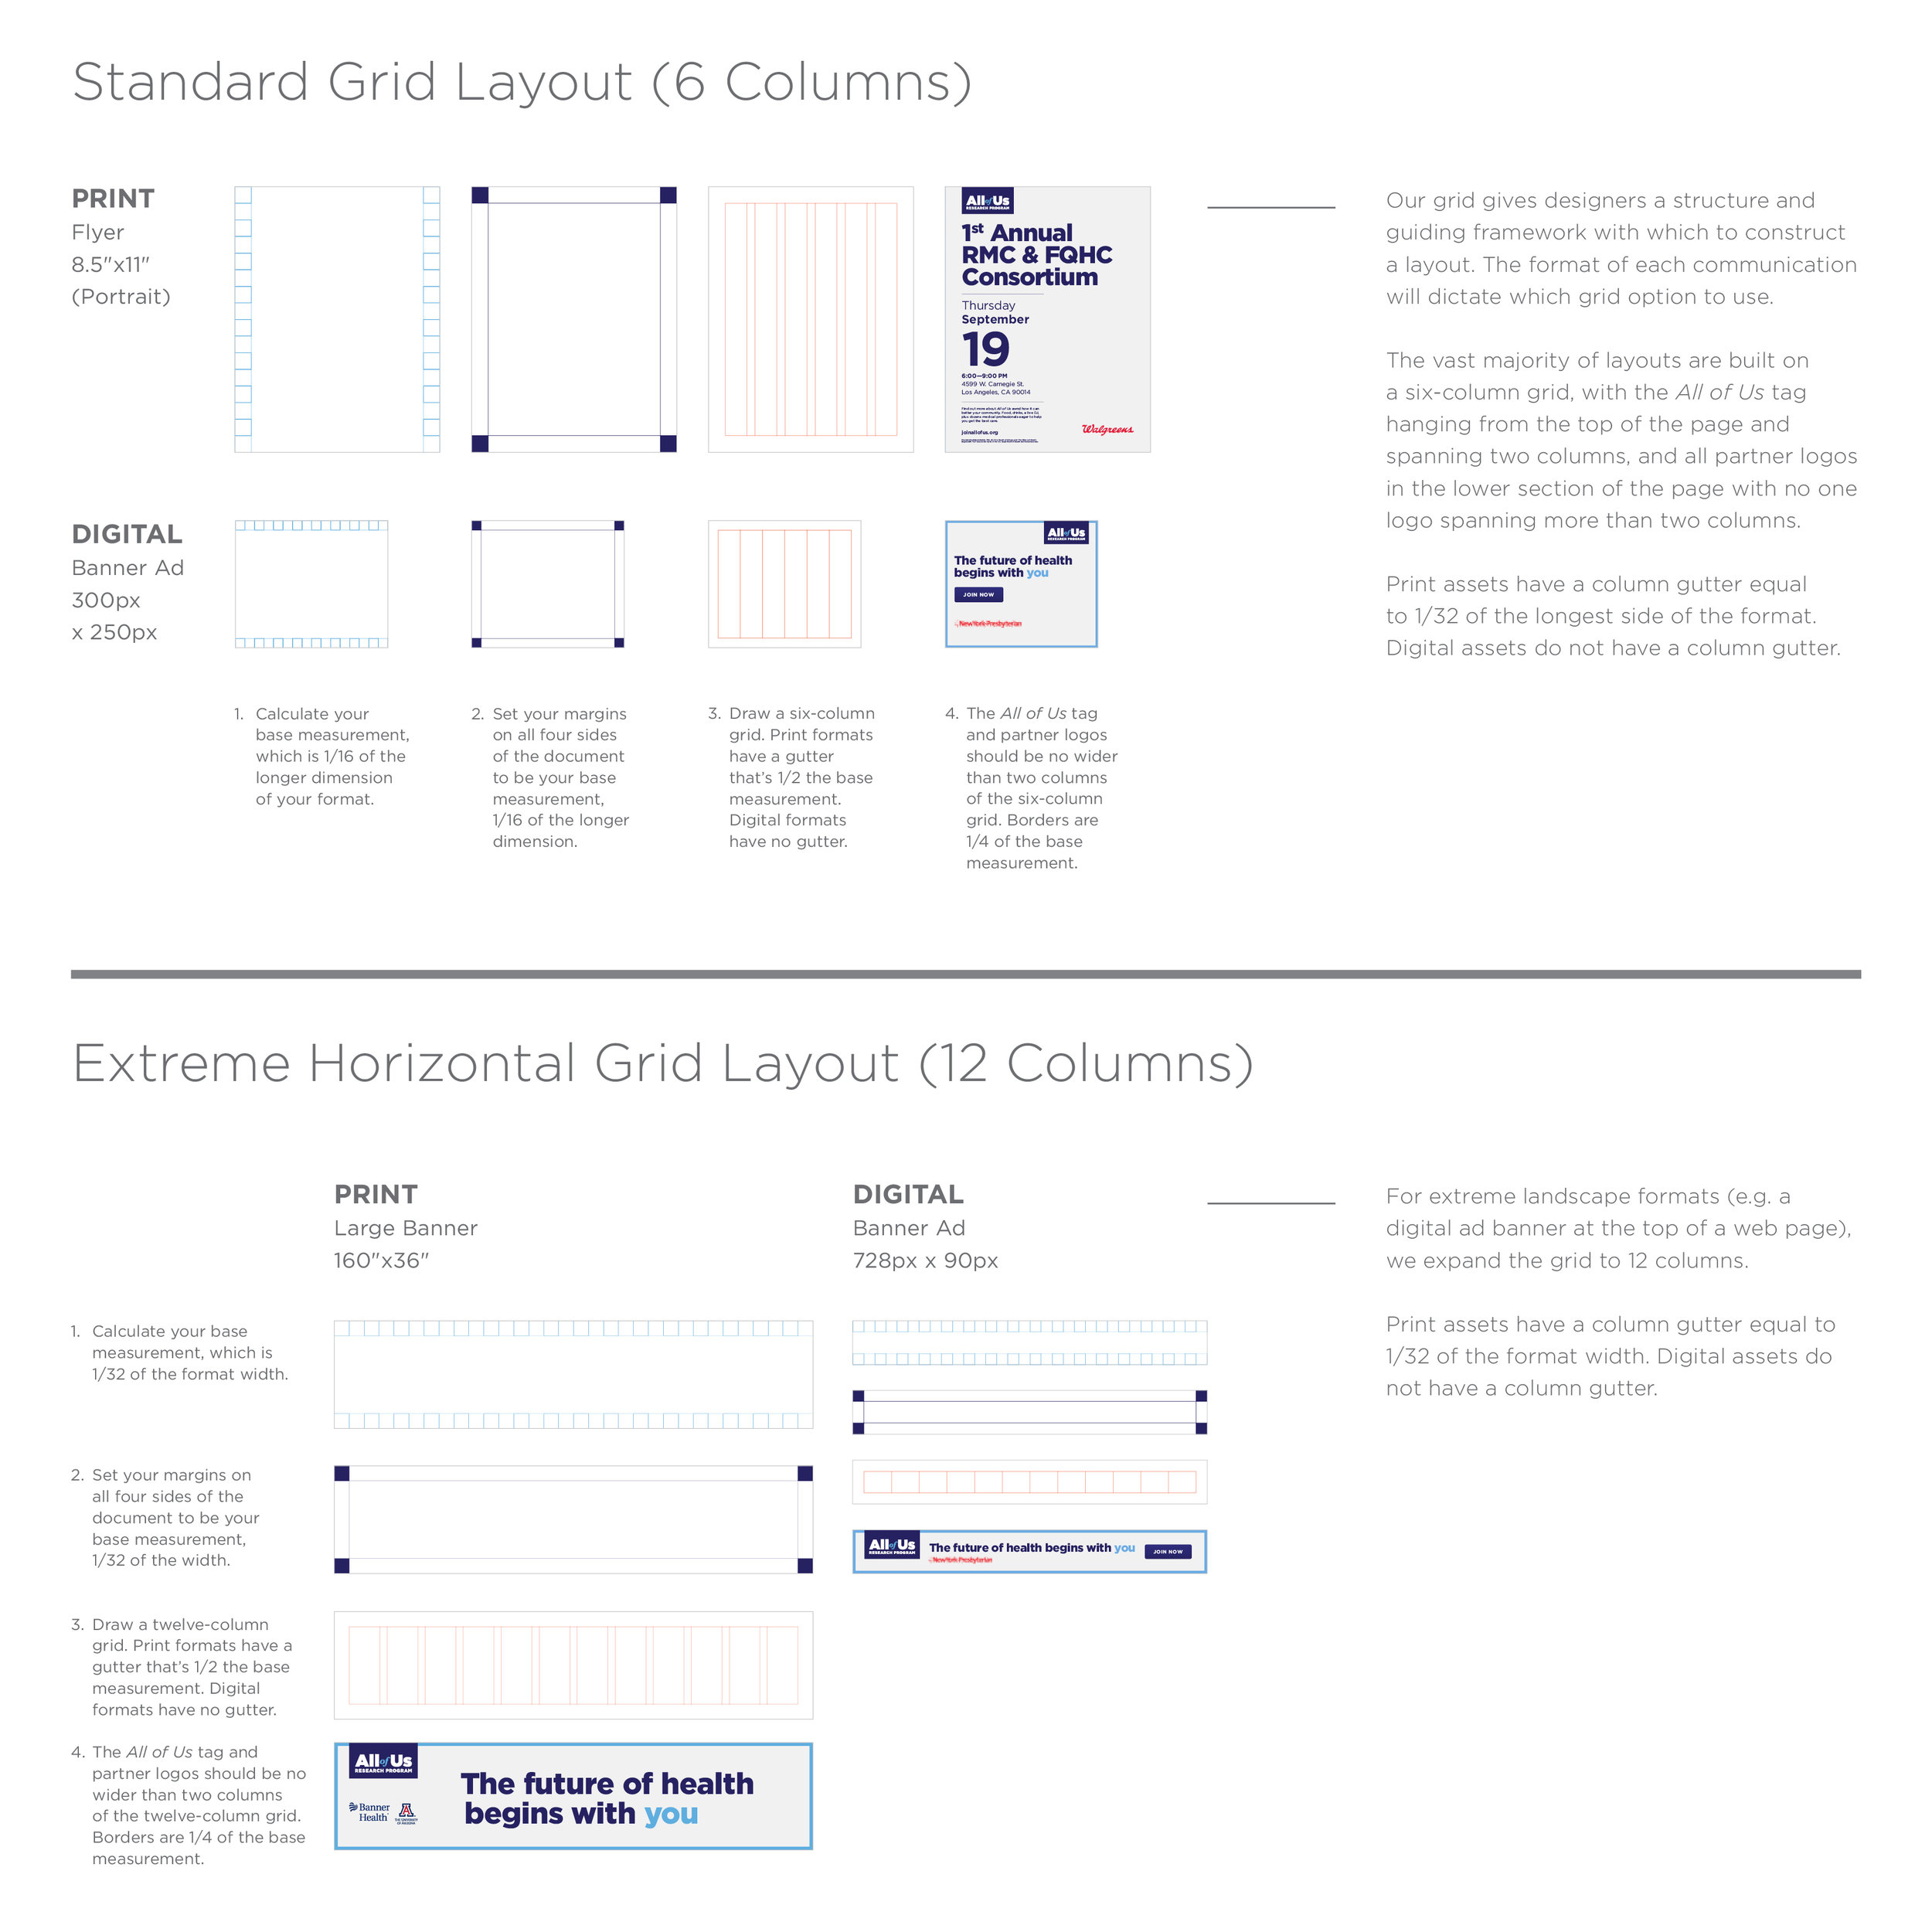 Excerpt from the style guide detailing the grid creation for co-branded assets.